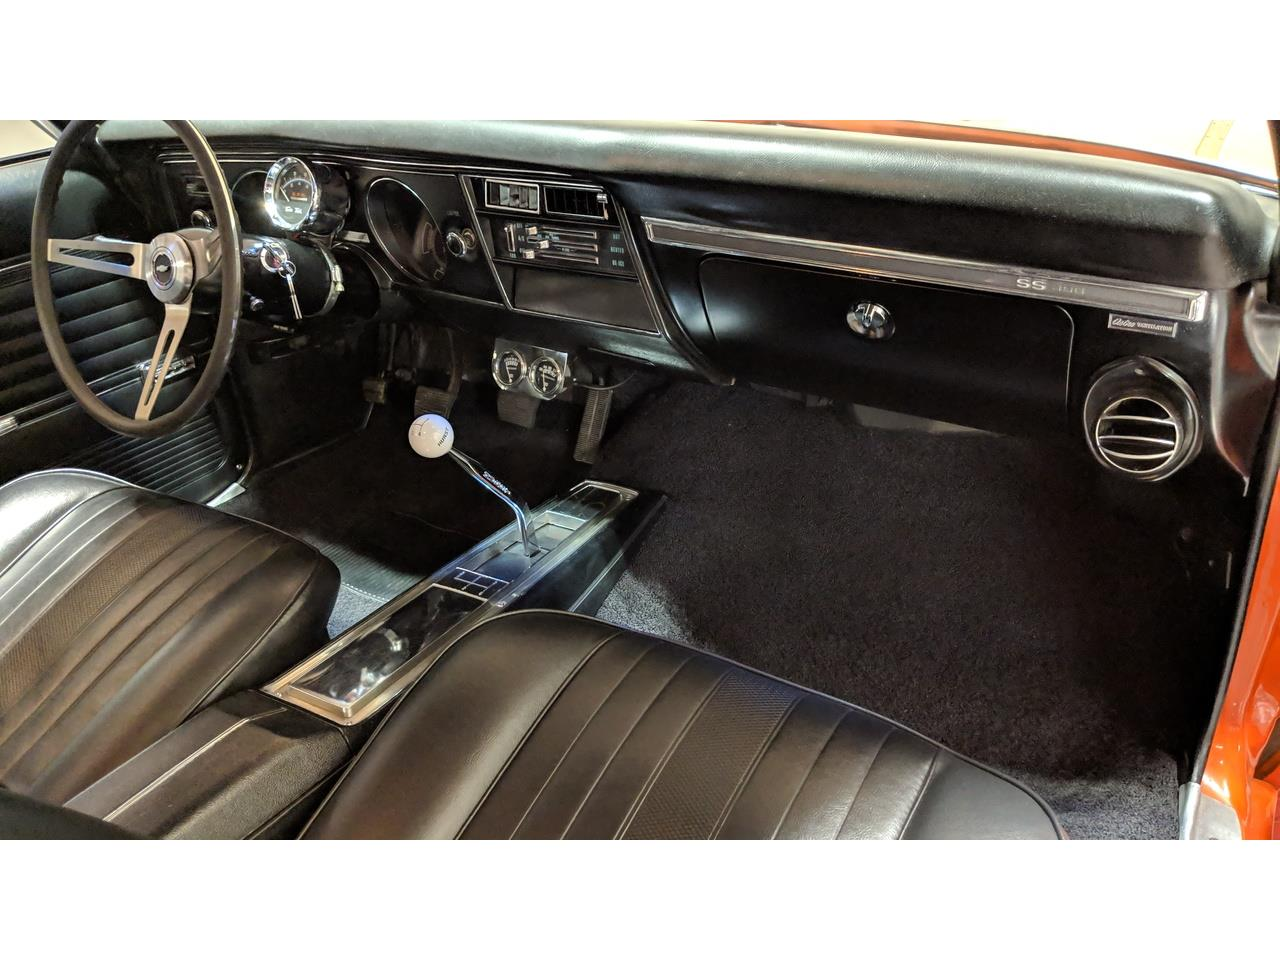 Large Picture of Classic '69 Chevrolet Chevelle SS located in Arizona - $54,000.00 Offered by a Private Seller - PEBN